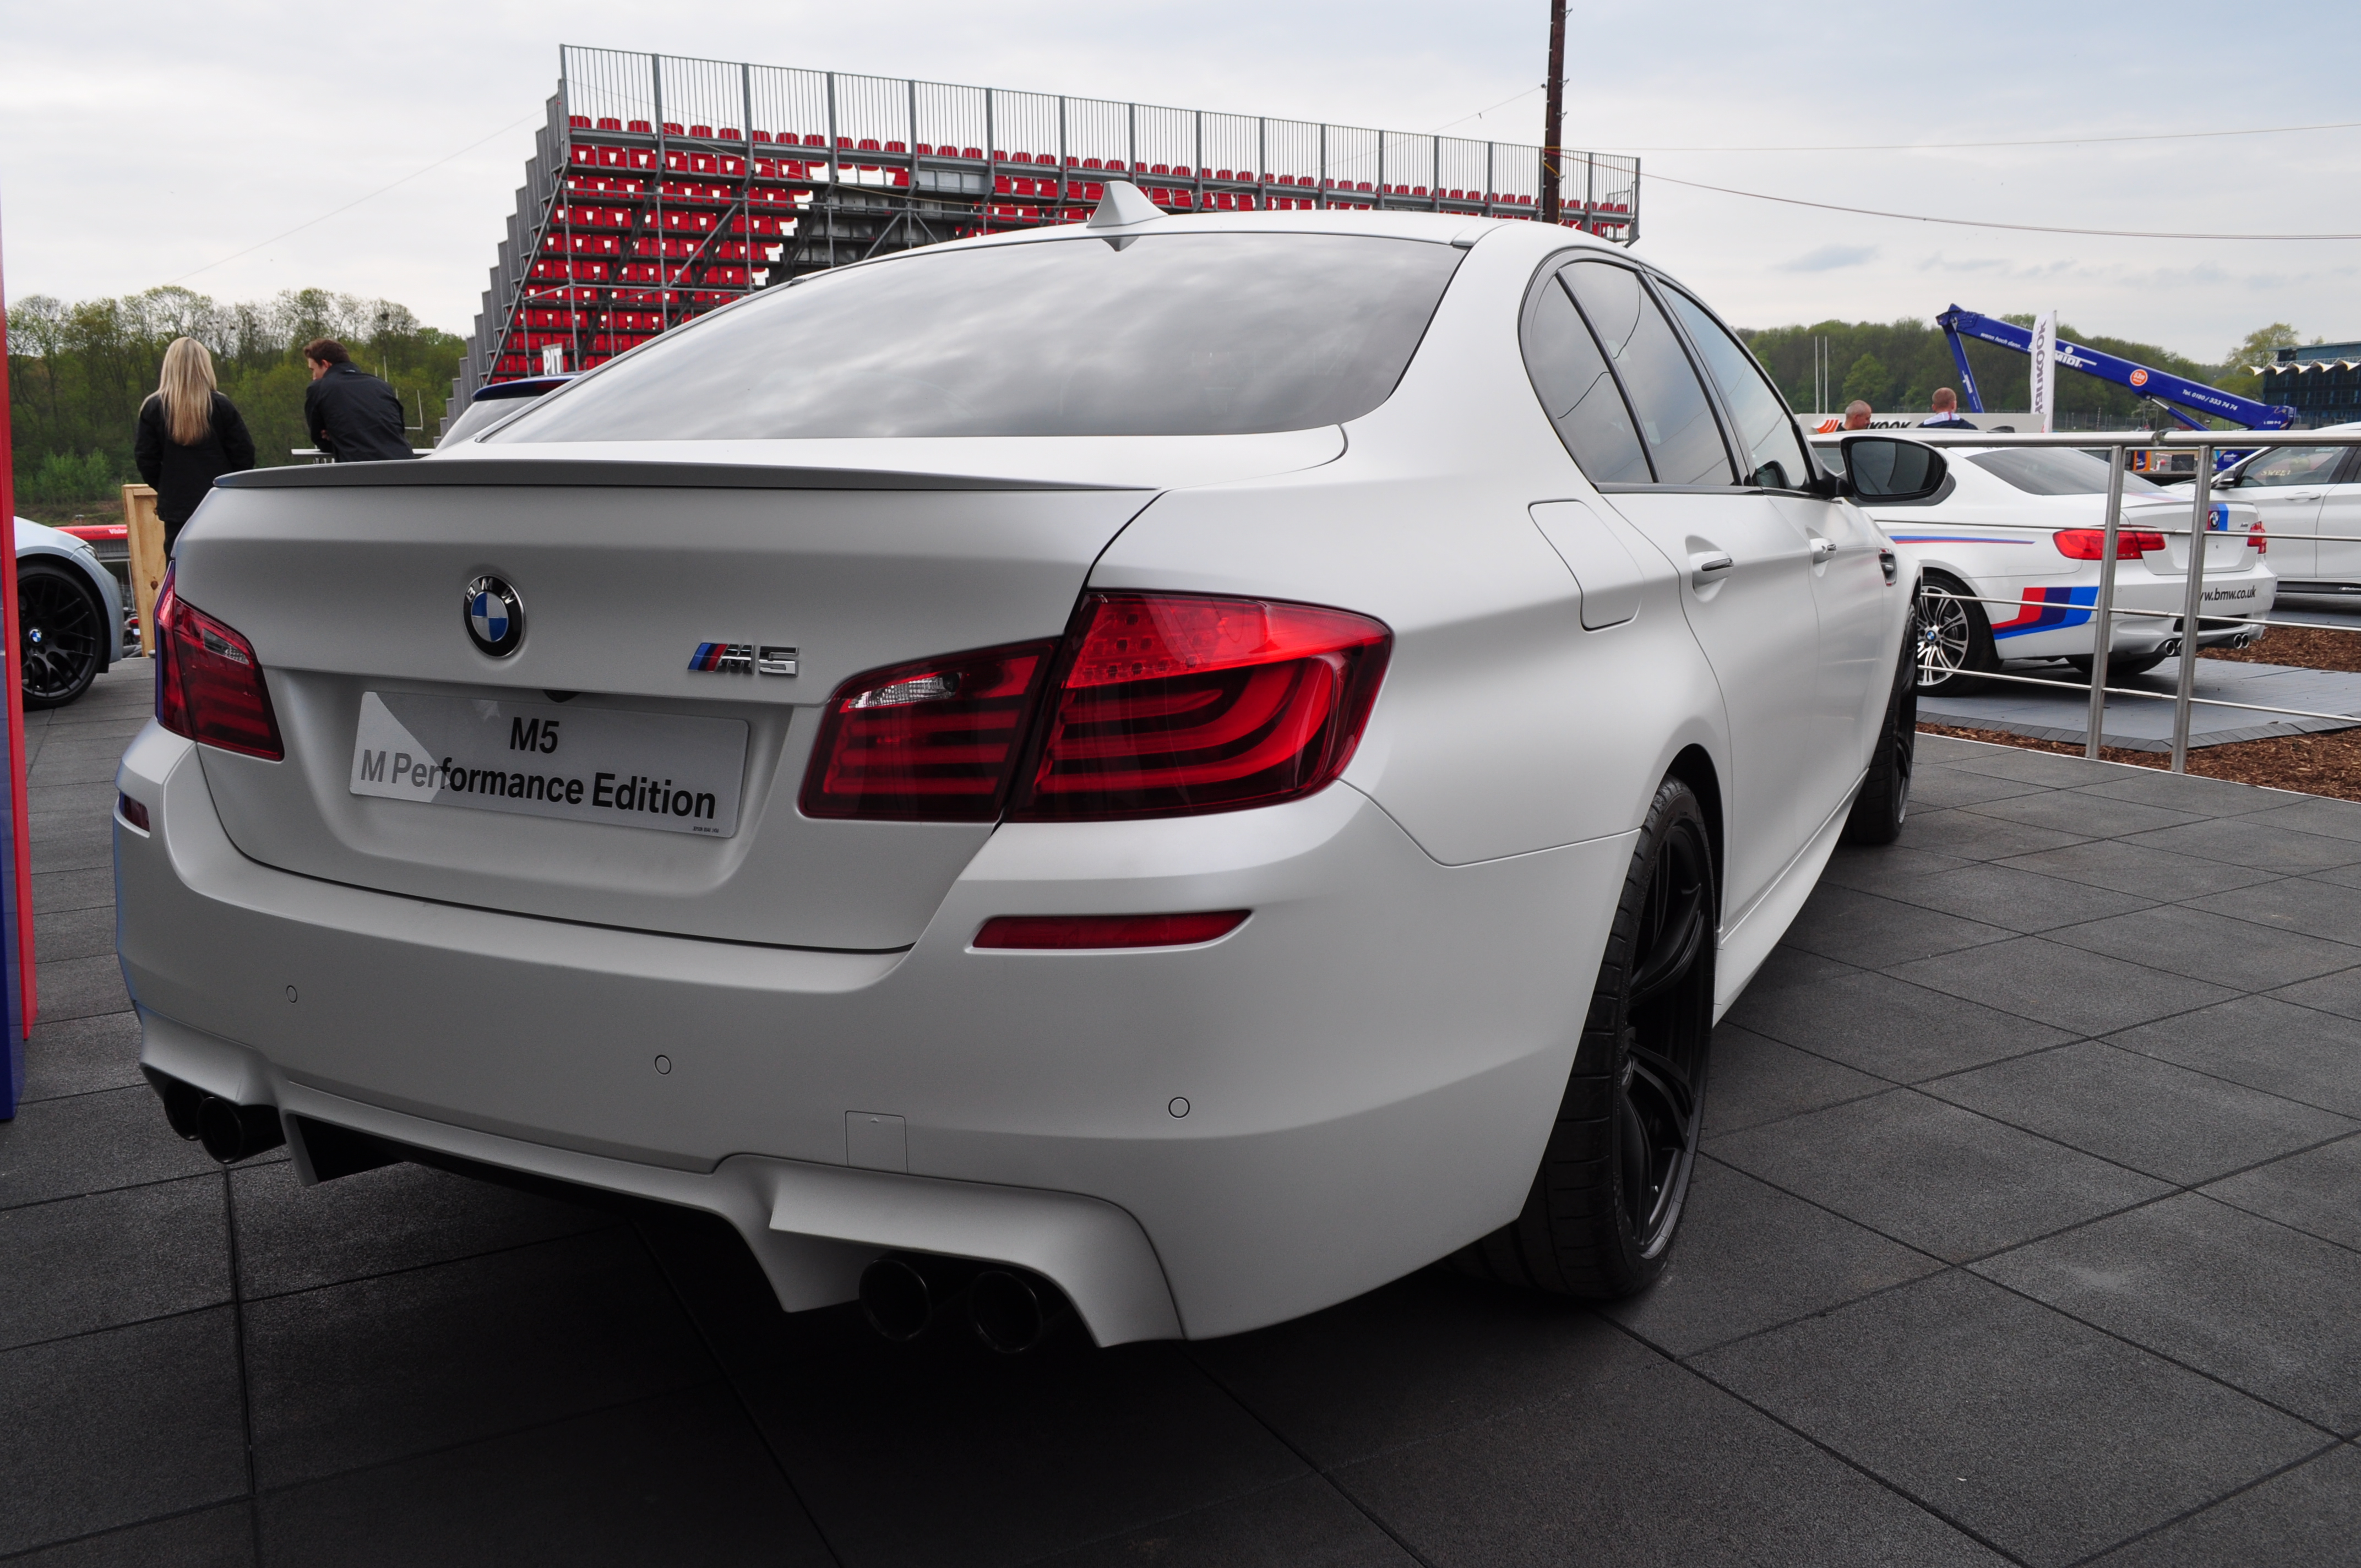 File:BMW M5 (F10) white sedan (7232693140) jpg - Wikimedia Commons